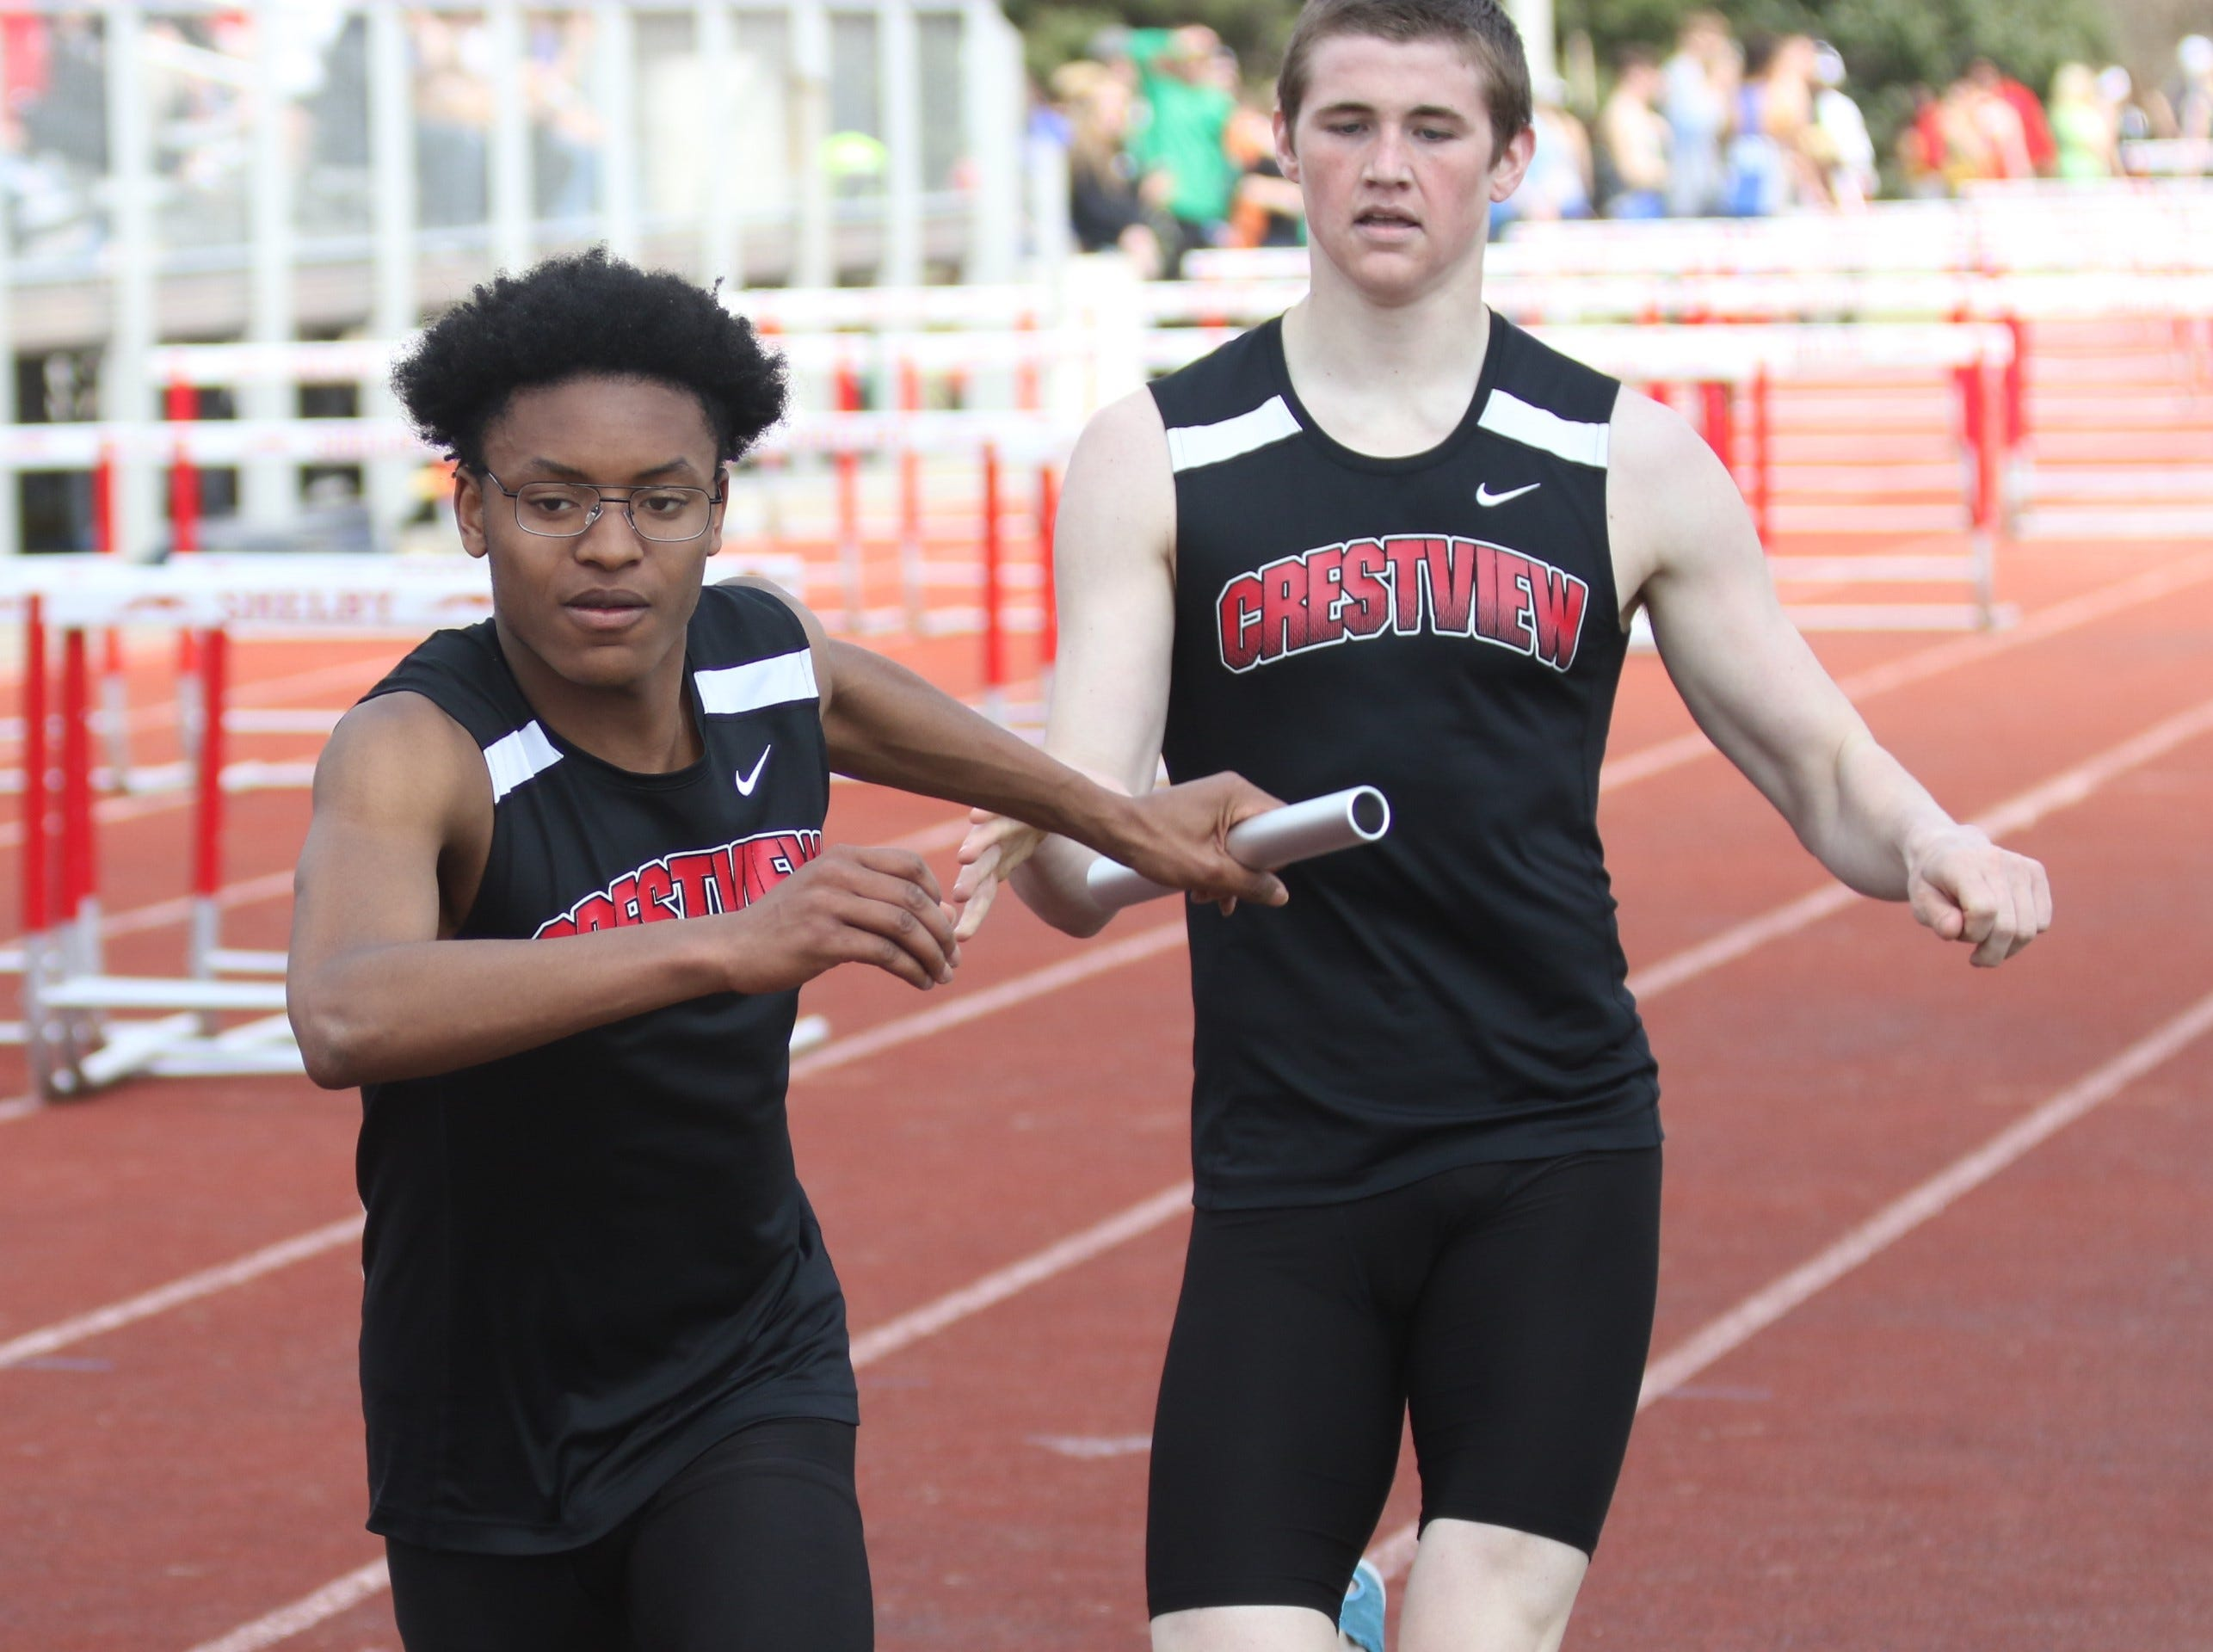 Crestview's James Barber receives the hand off from teammate Ross Kuhn for the championship 4x800 team during the Shelby High School Invitational on Saturday afternoon.